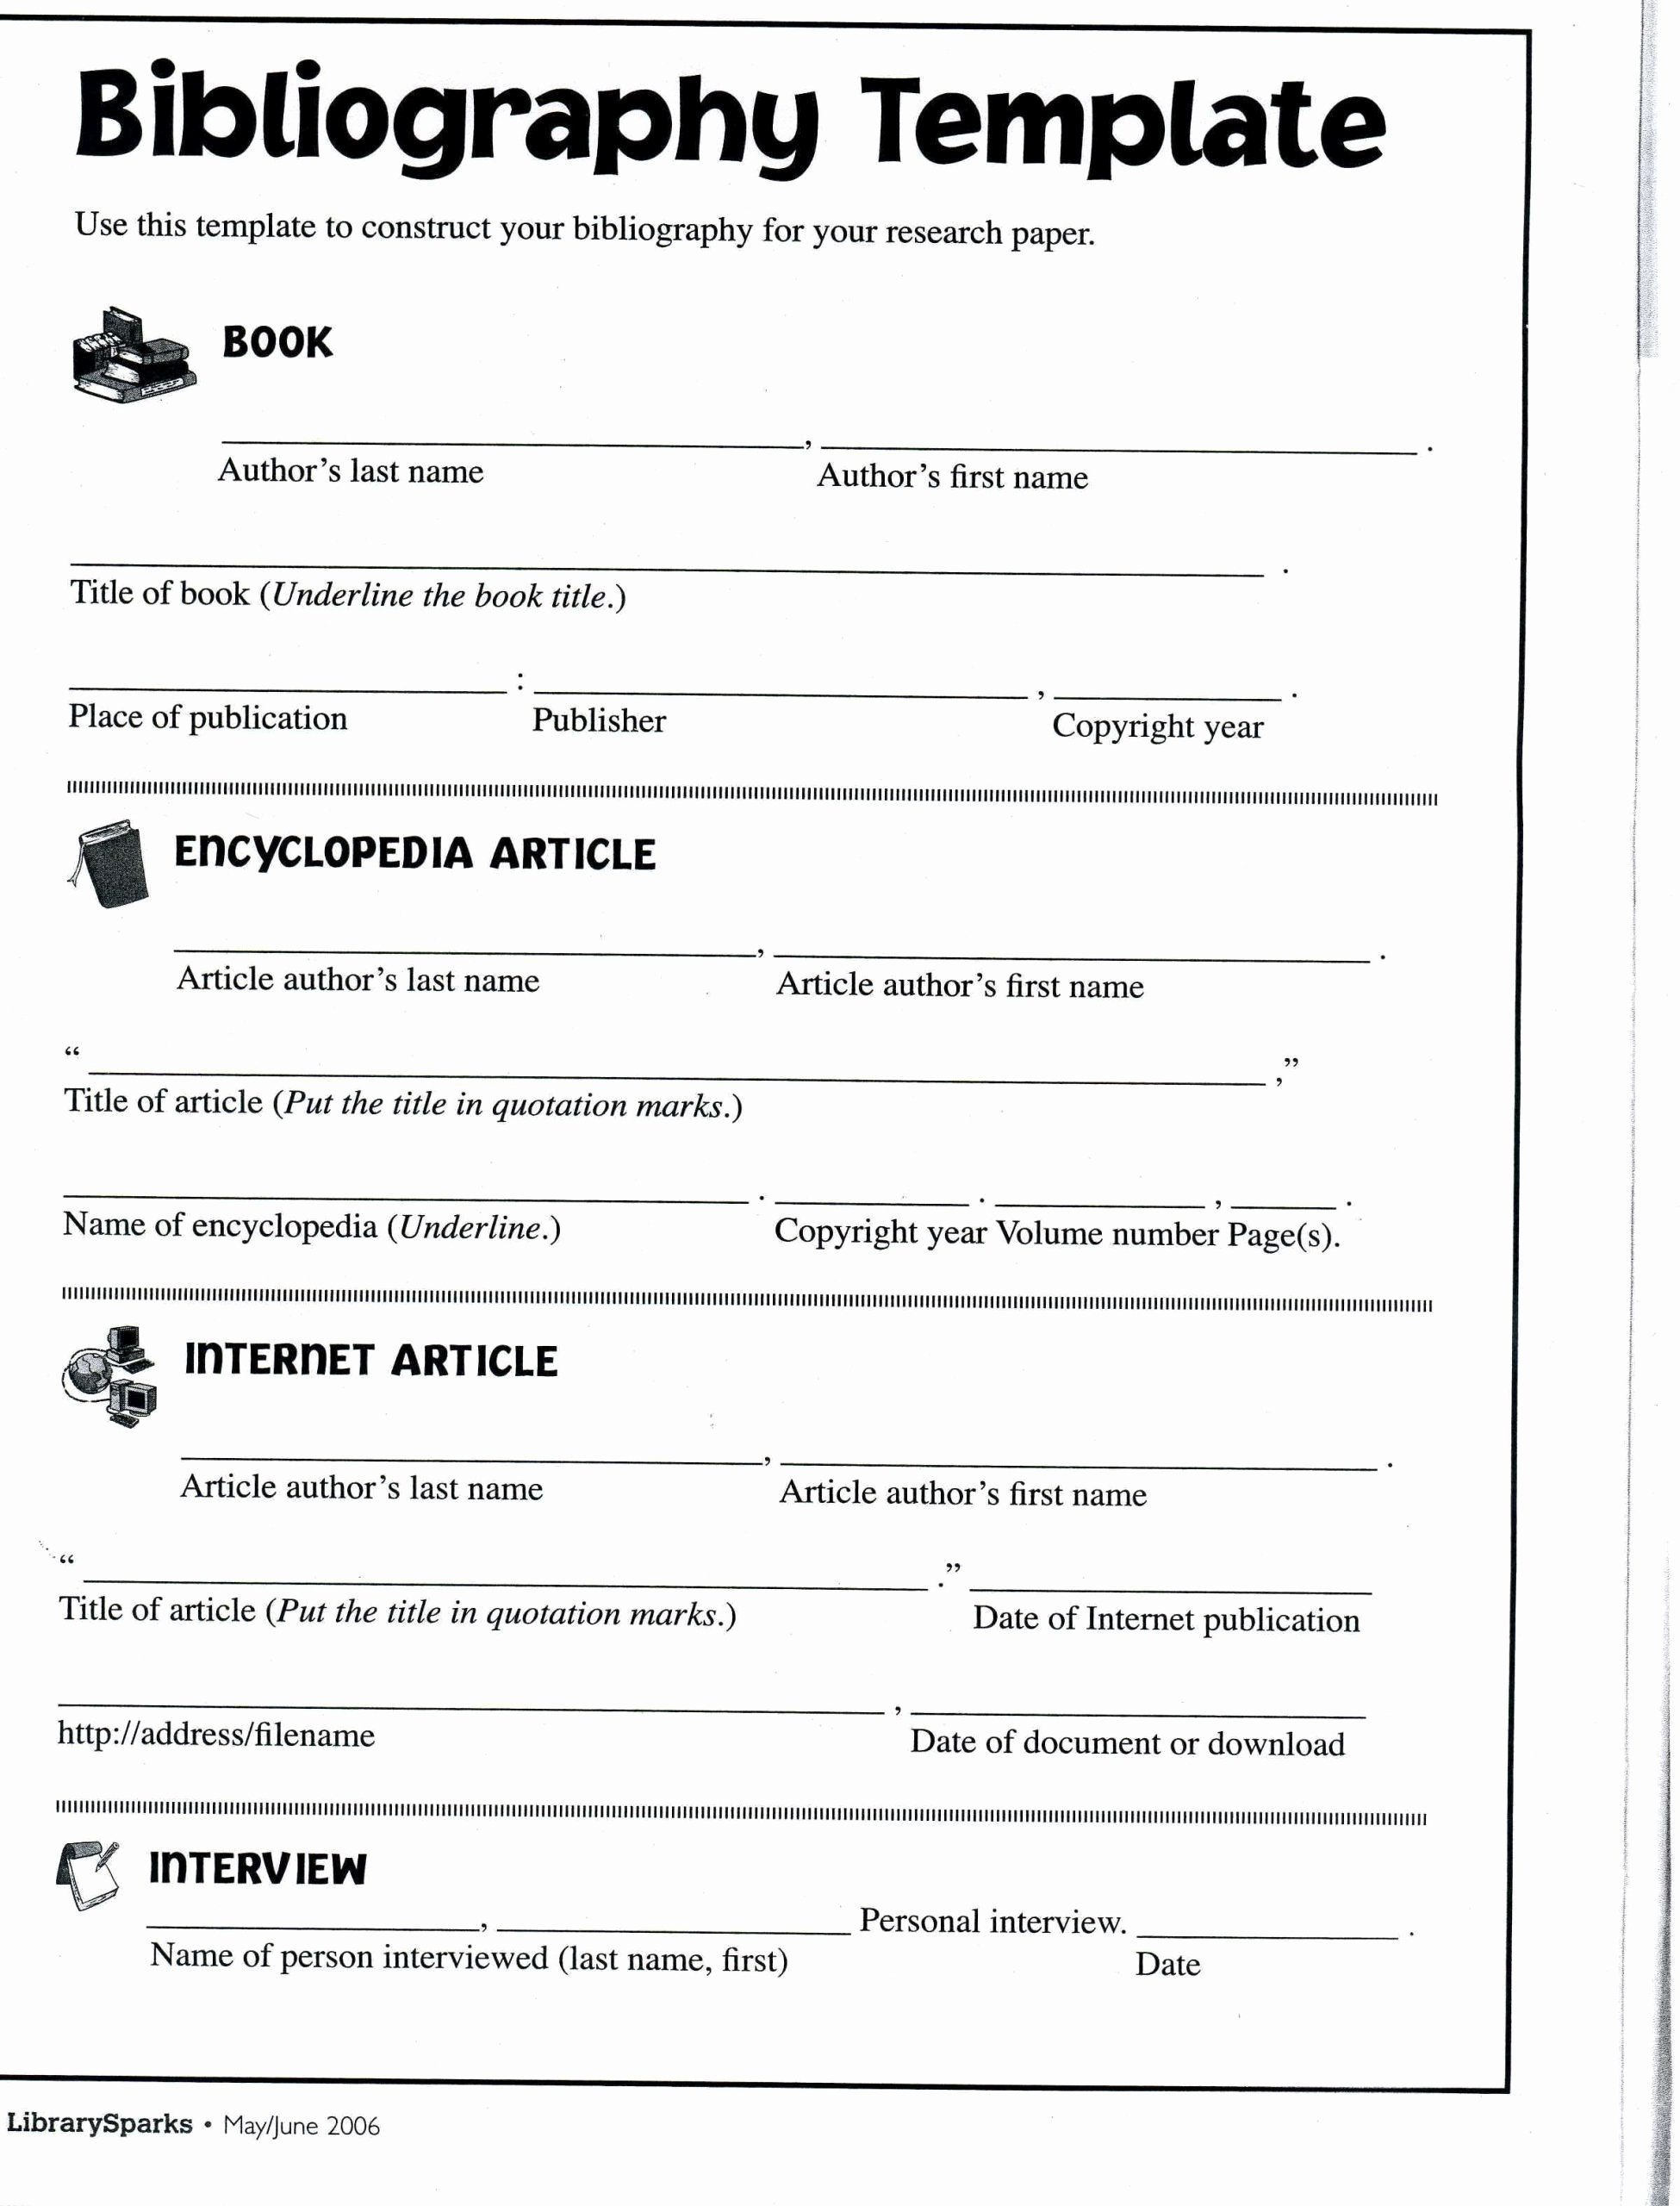 Citing sources Worksheet 5th Grade Kids Citing sources Worksheet 5th Grade Image Result for